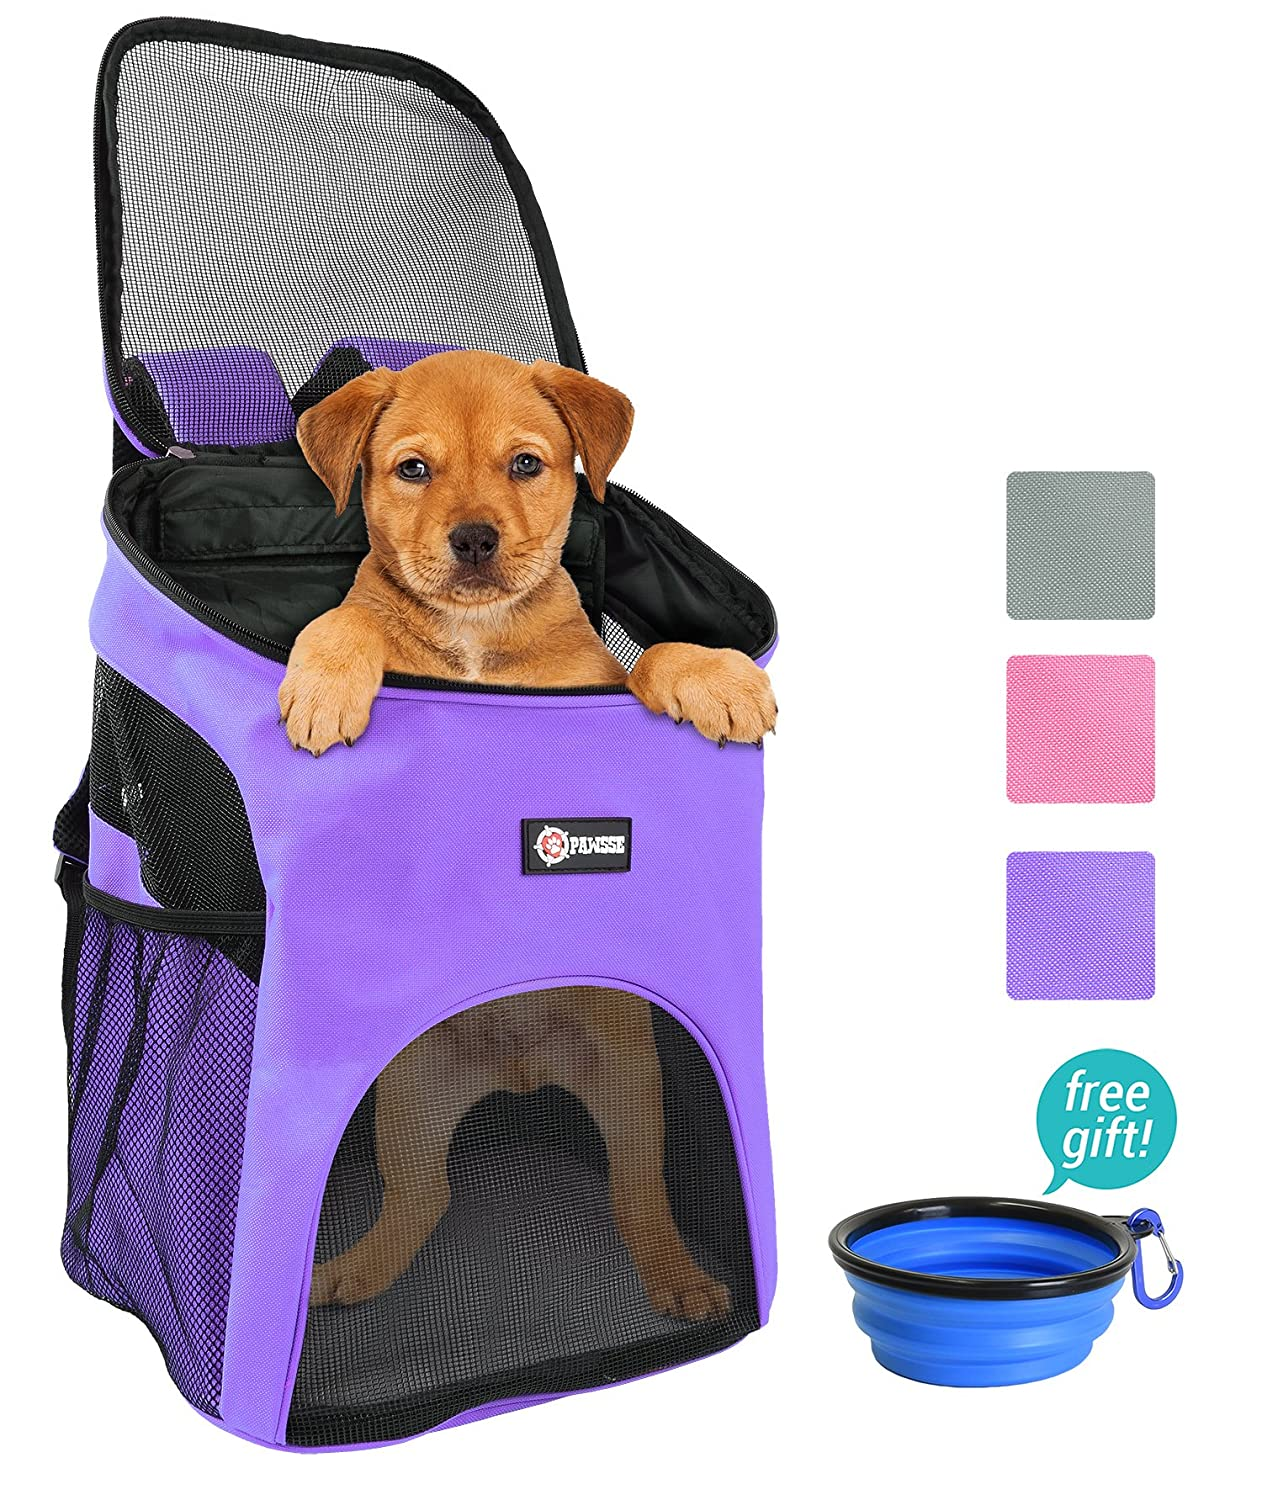 Purple Pawsse Pet Carrier Backpack for Small Cats Dogs Rabbit, Breathable Mesh Pup Pack Outdoor Travel Carrier for Walk, Hiking, Cycling Purple